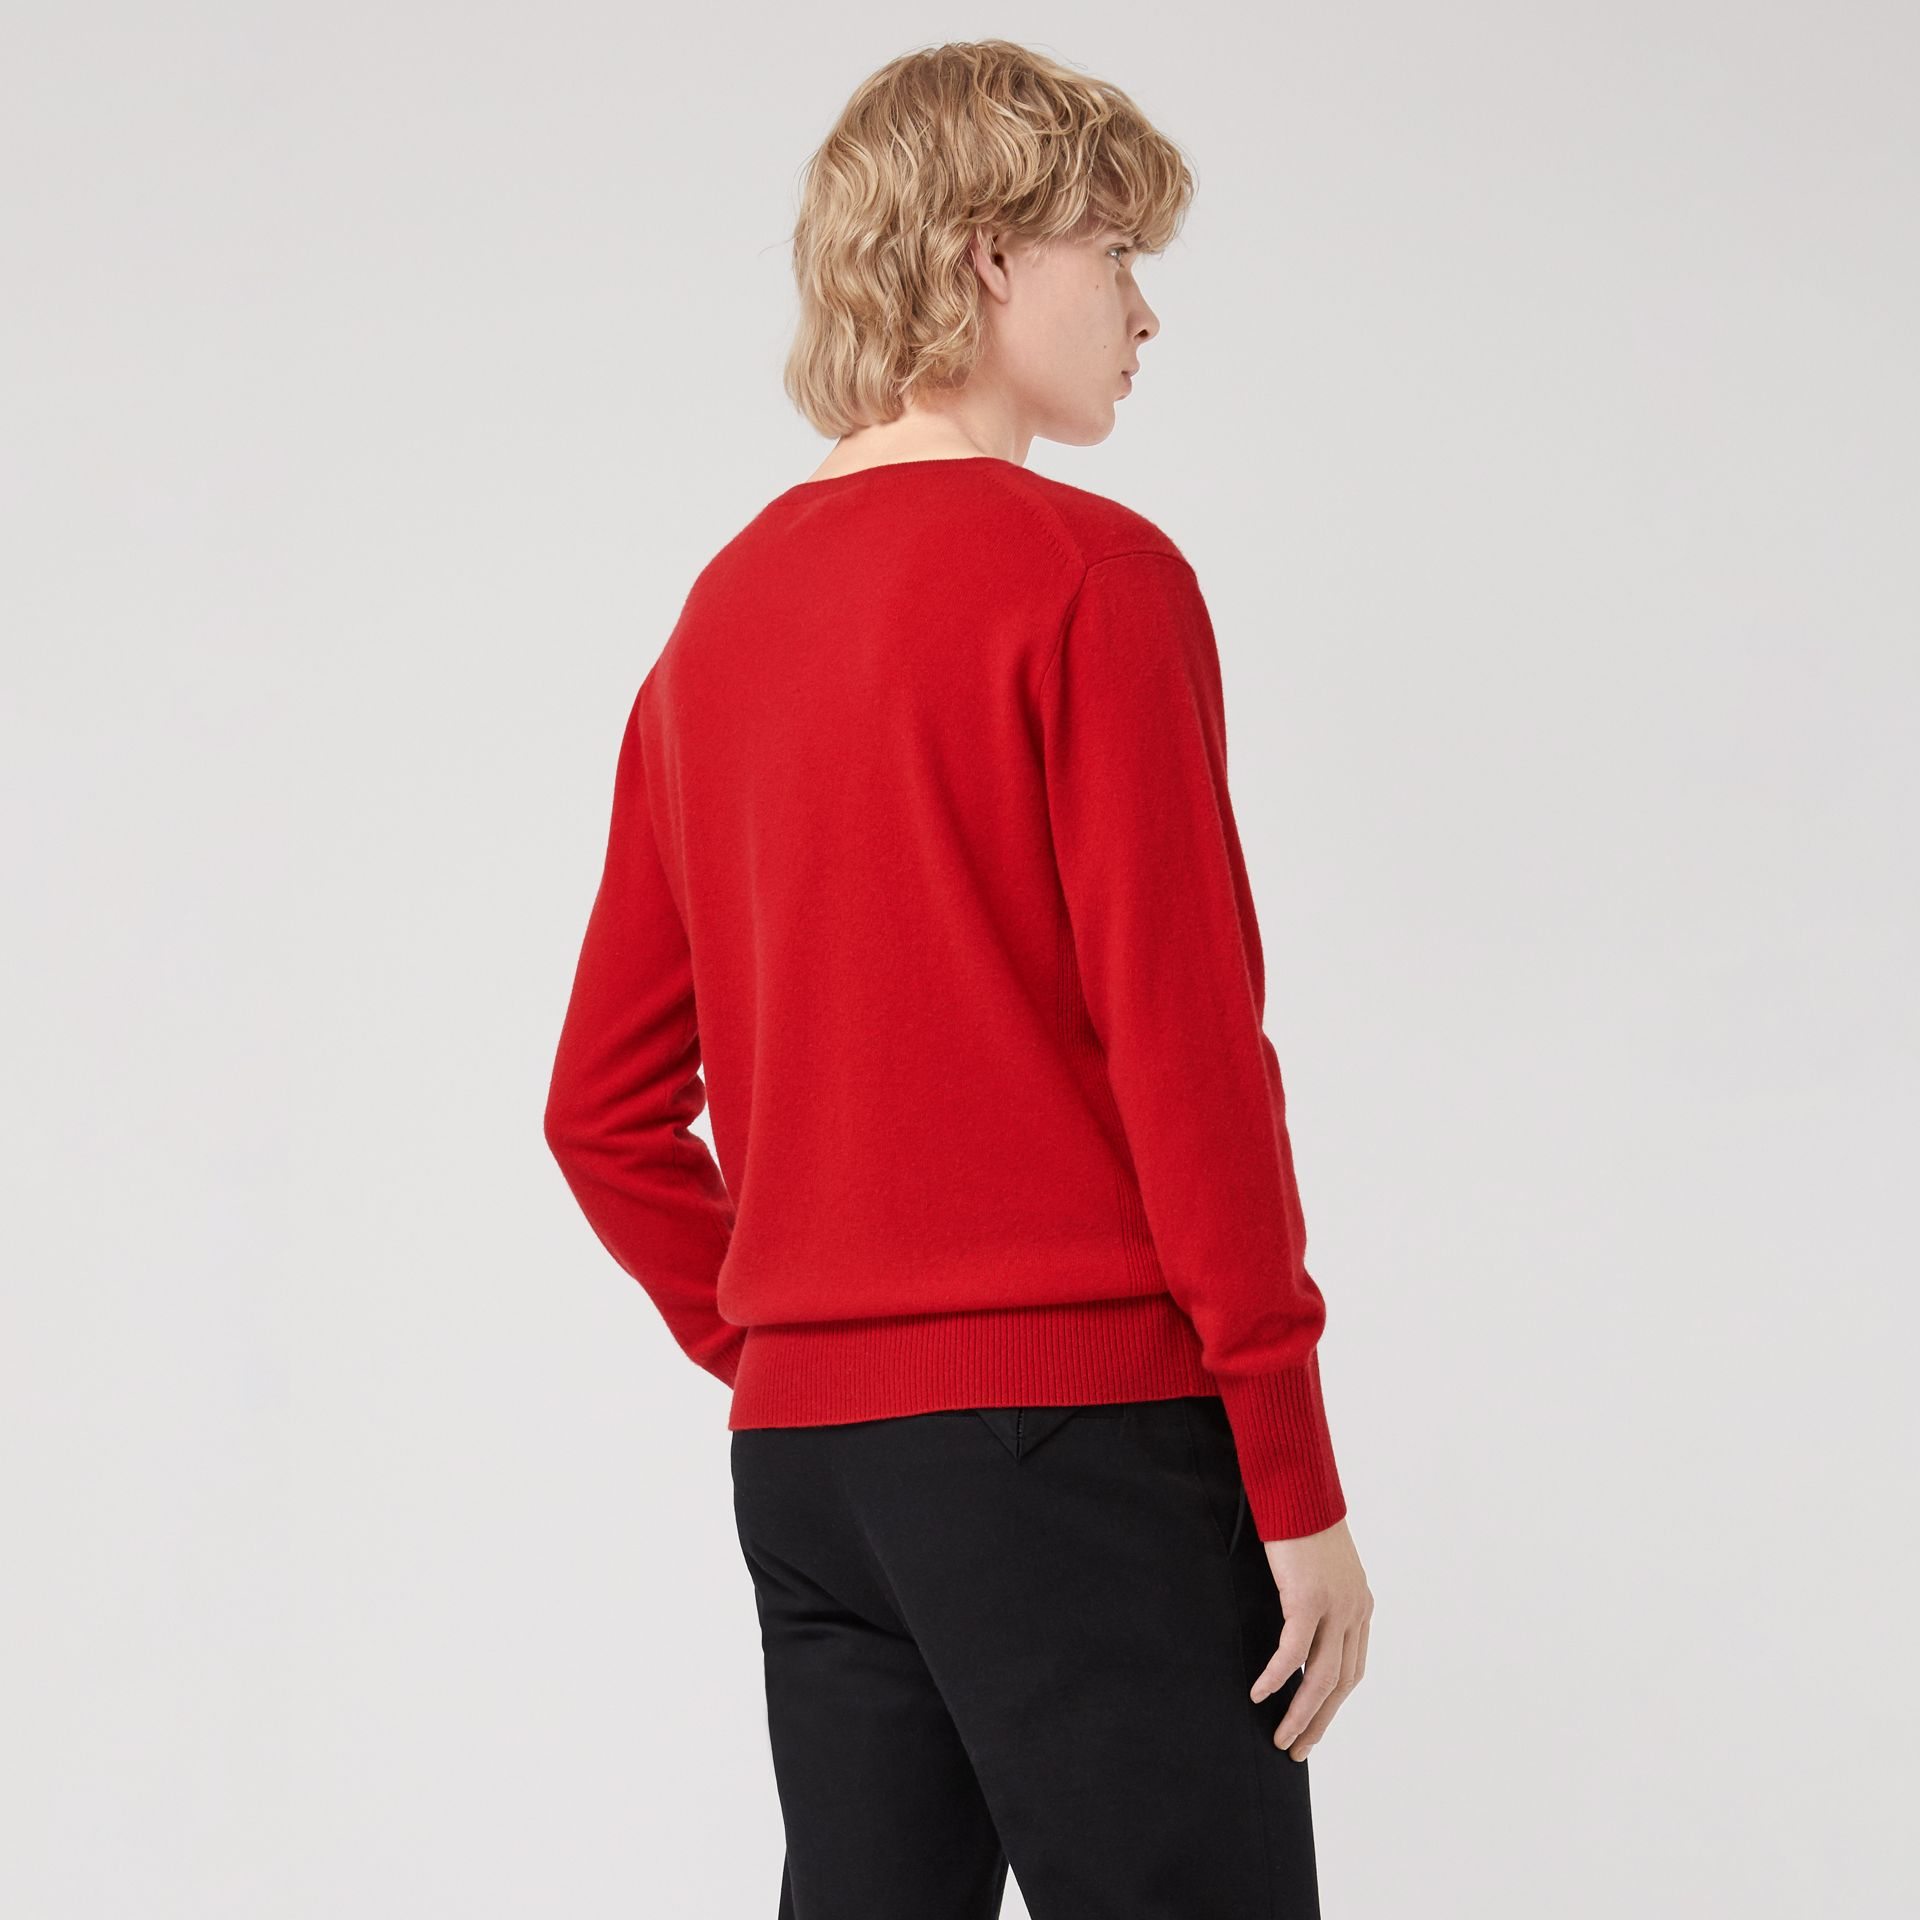 Embroidered Archive Logo Cashmere Sweater in Bright Red - Men | Burberry United States - gallery image 2